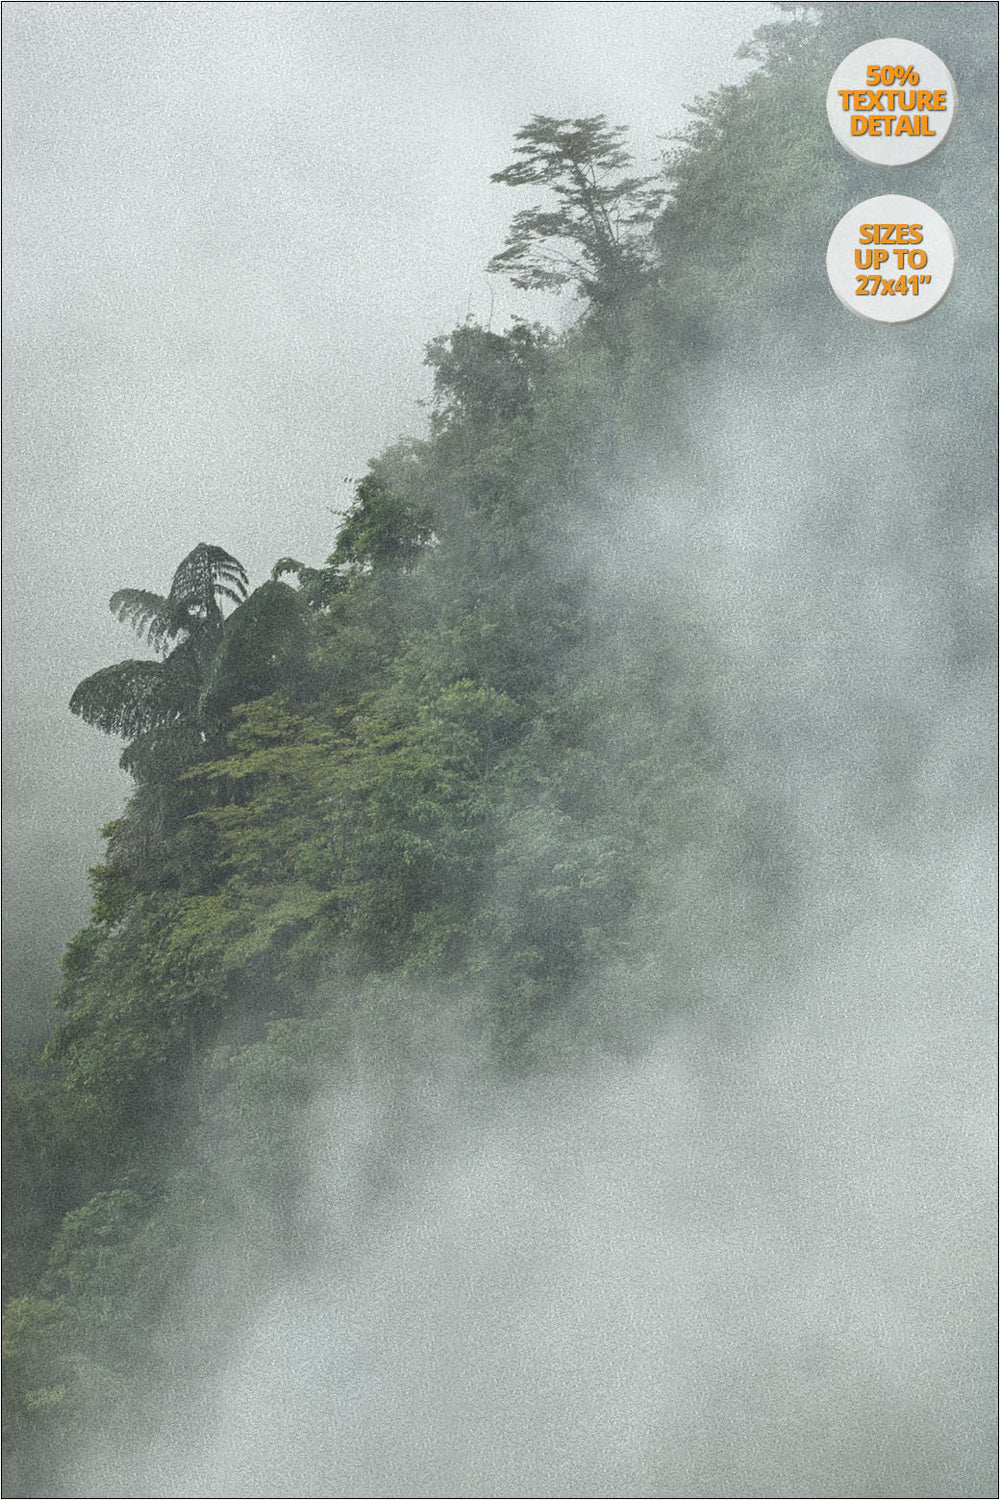 Tree in the fog, Bac Ha, Vietnam. | 50% Print Detail.